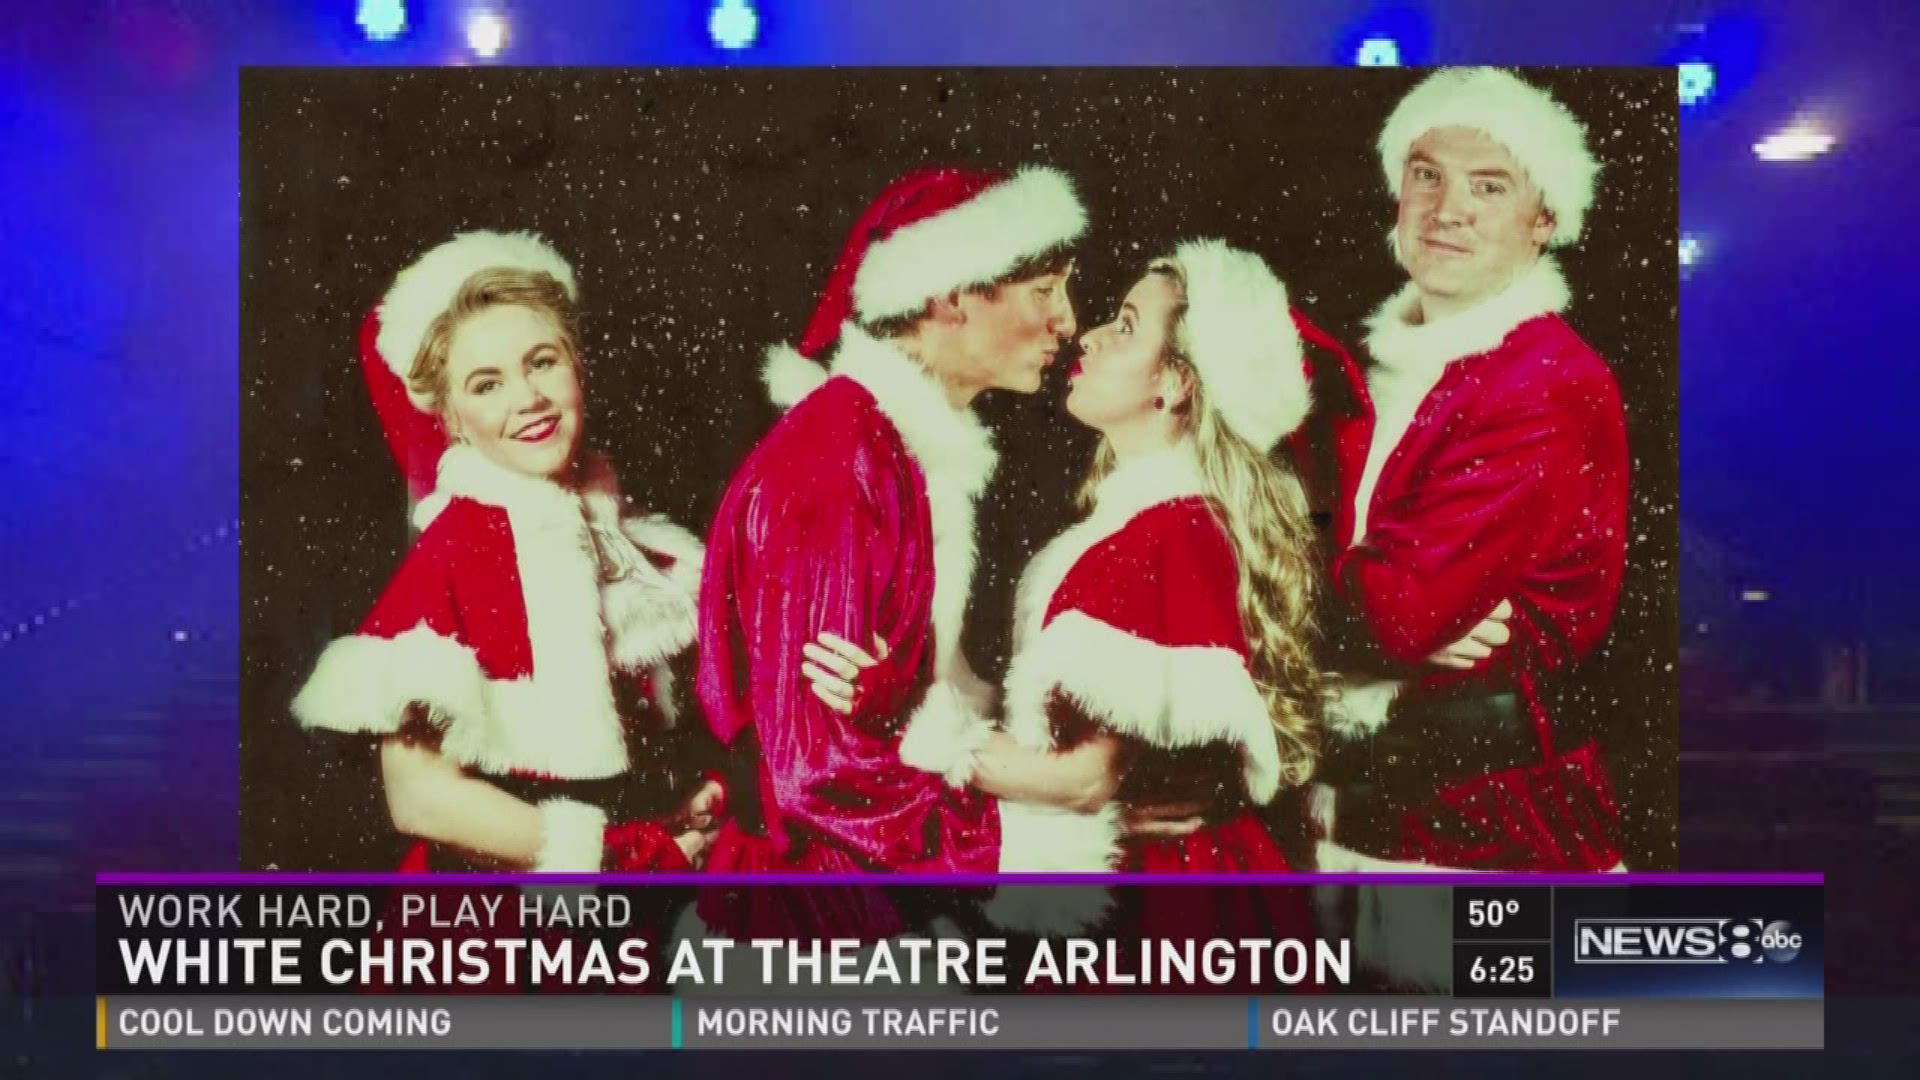 work hard play hard white christmas actors lead double lives - White Christmas Play